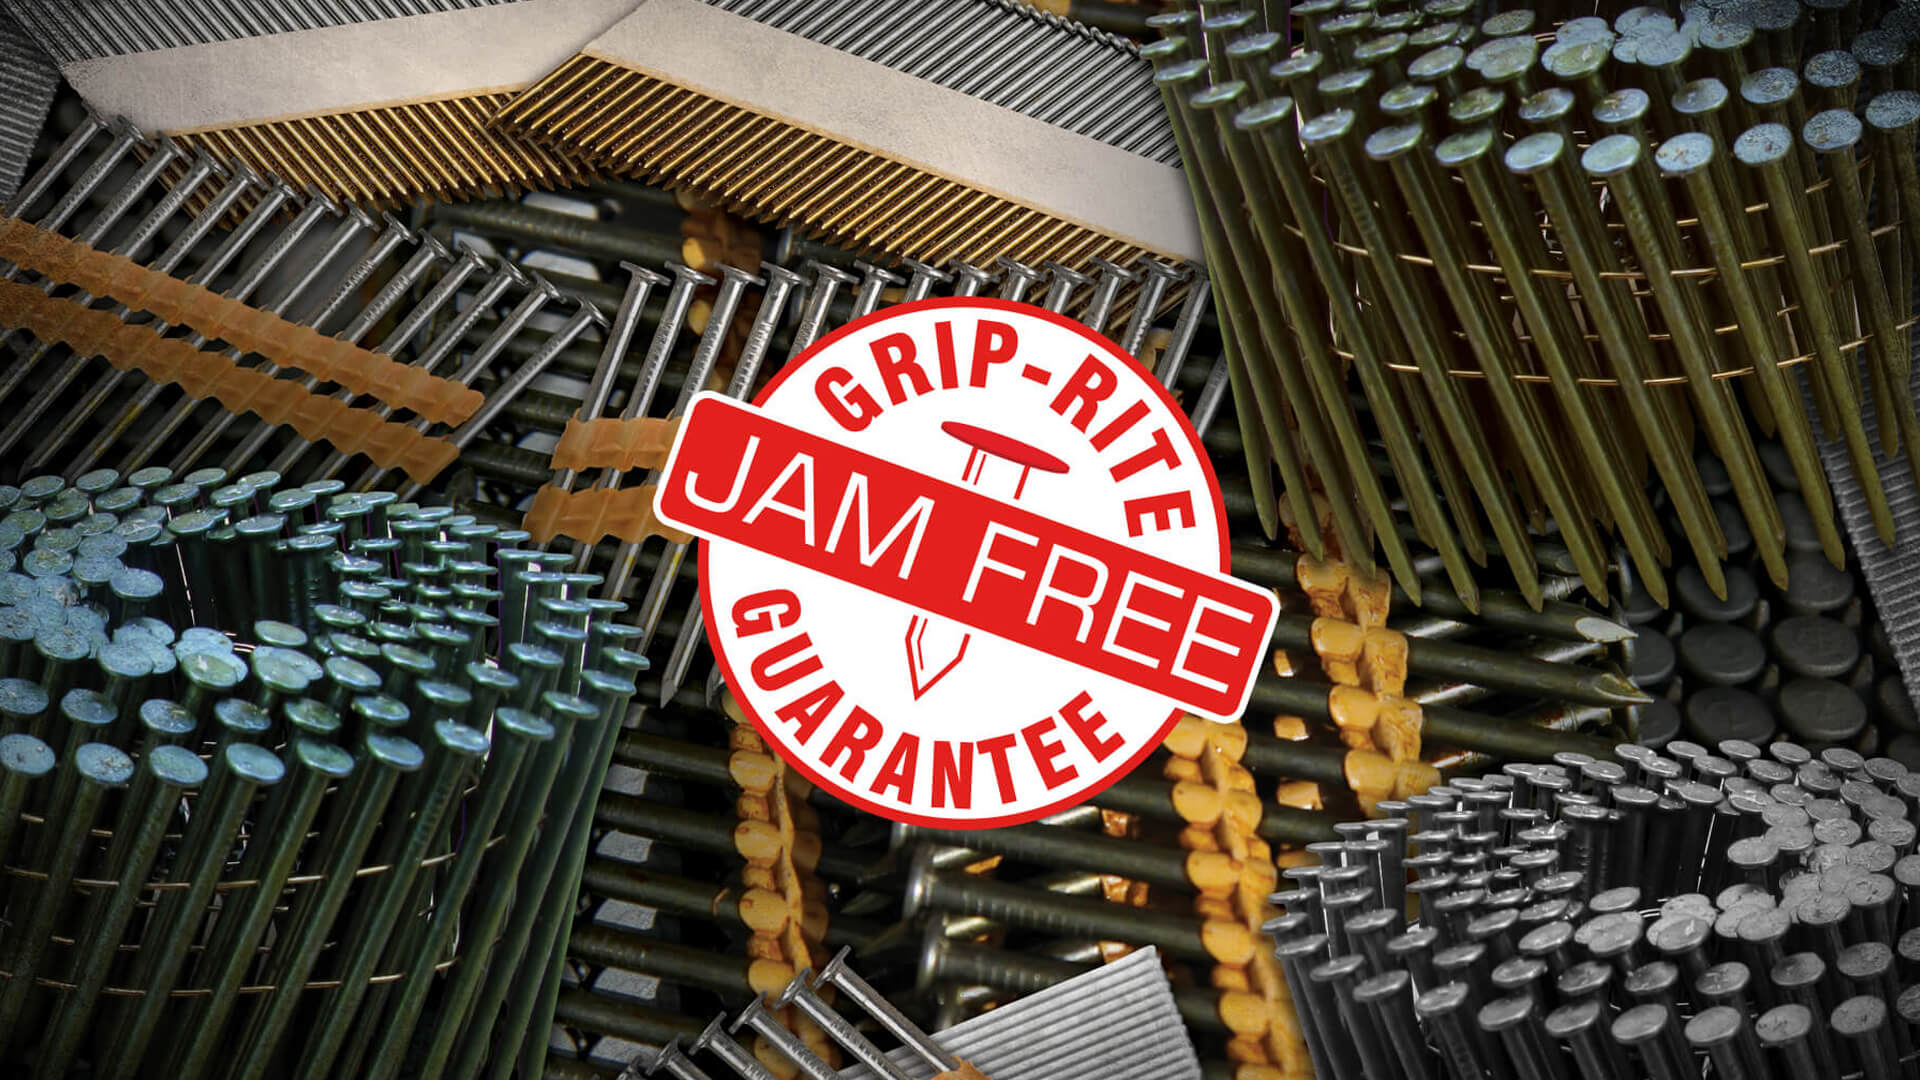 Home | Grip Rite Building Tools and Supplies